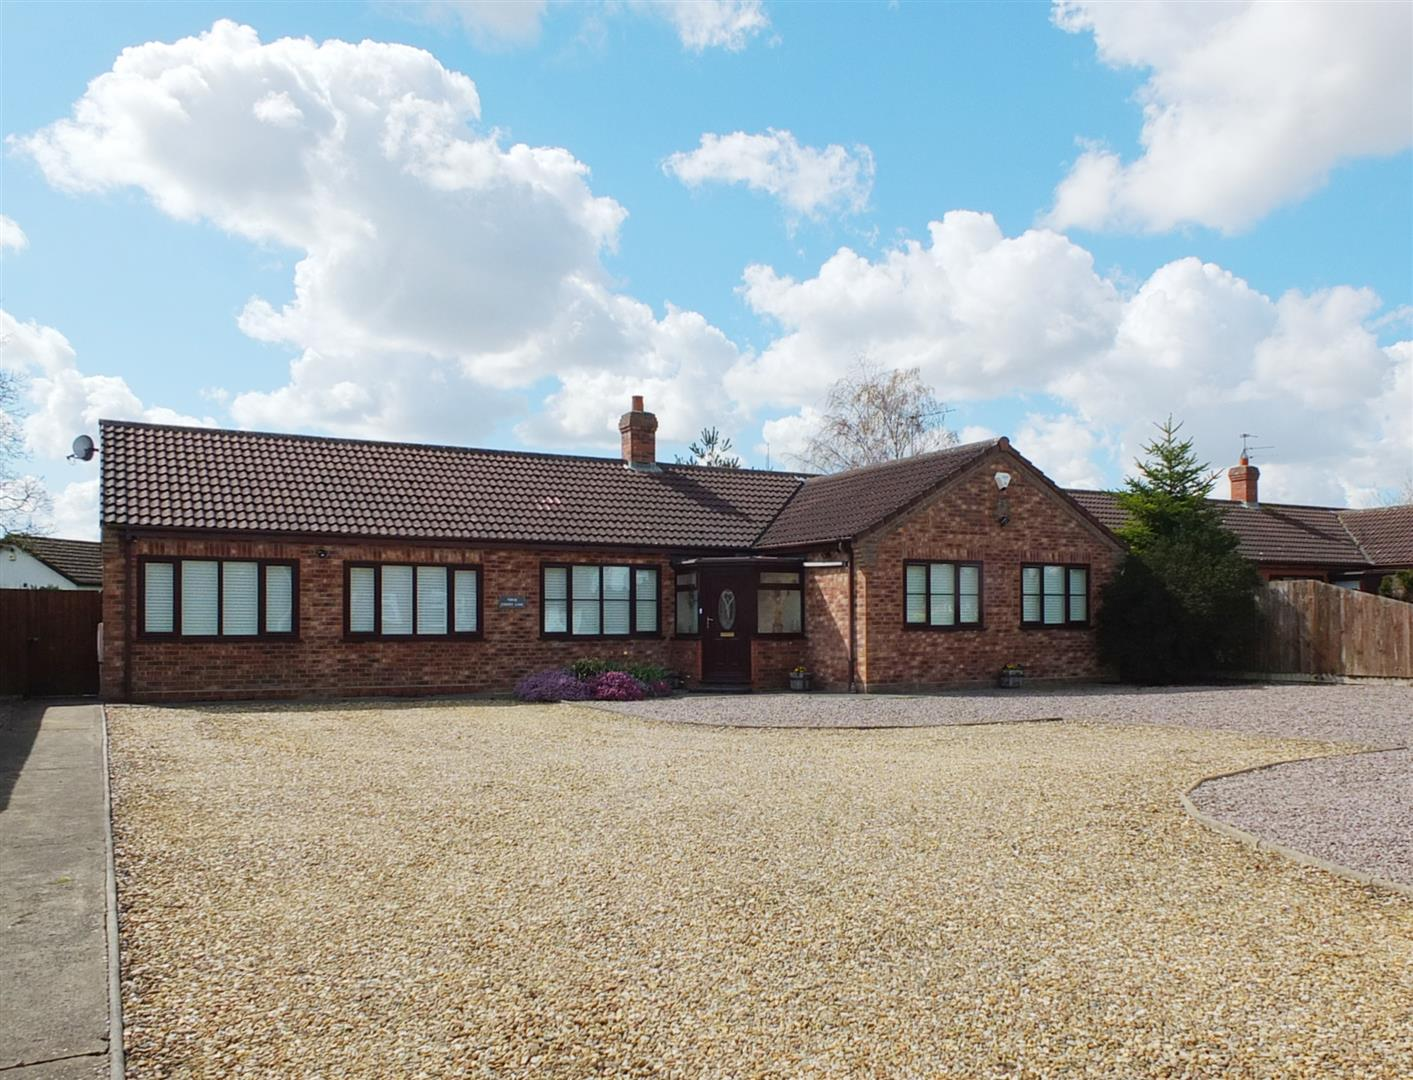 3 bed detached bungalow for sale in Cherry Lane, Fleet Hargate Holbeach Spalding, PE12